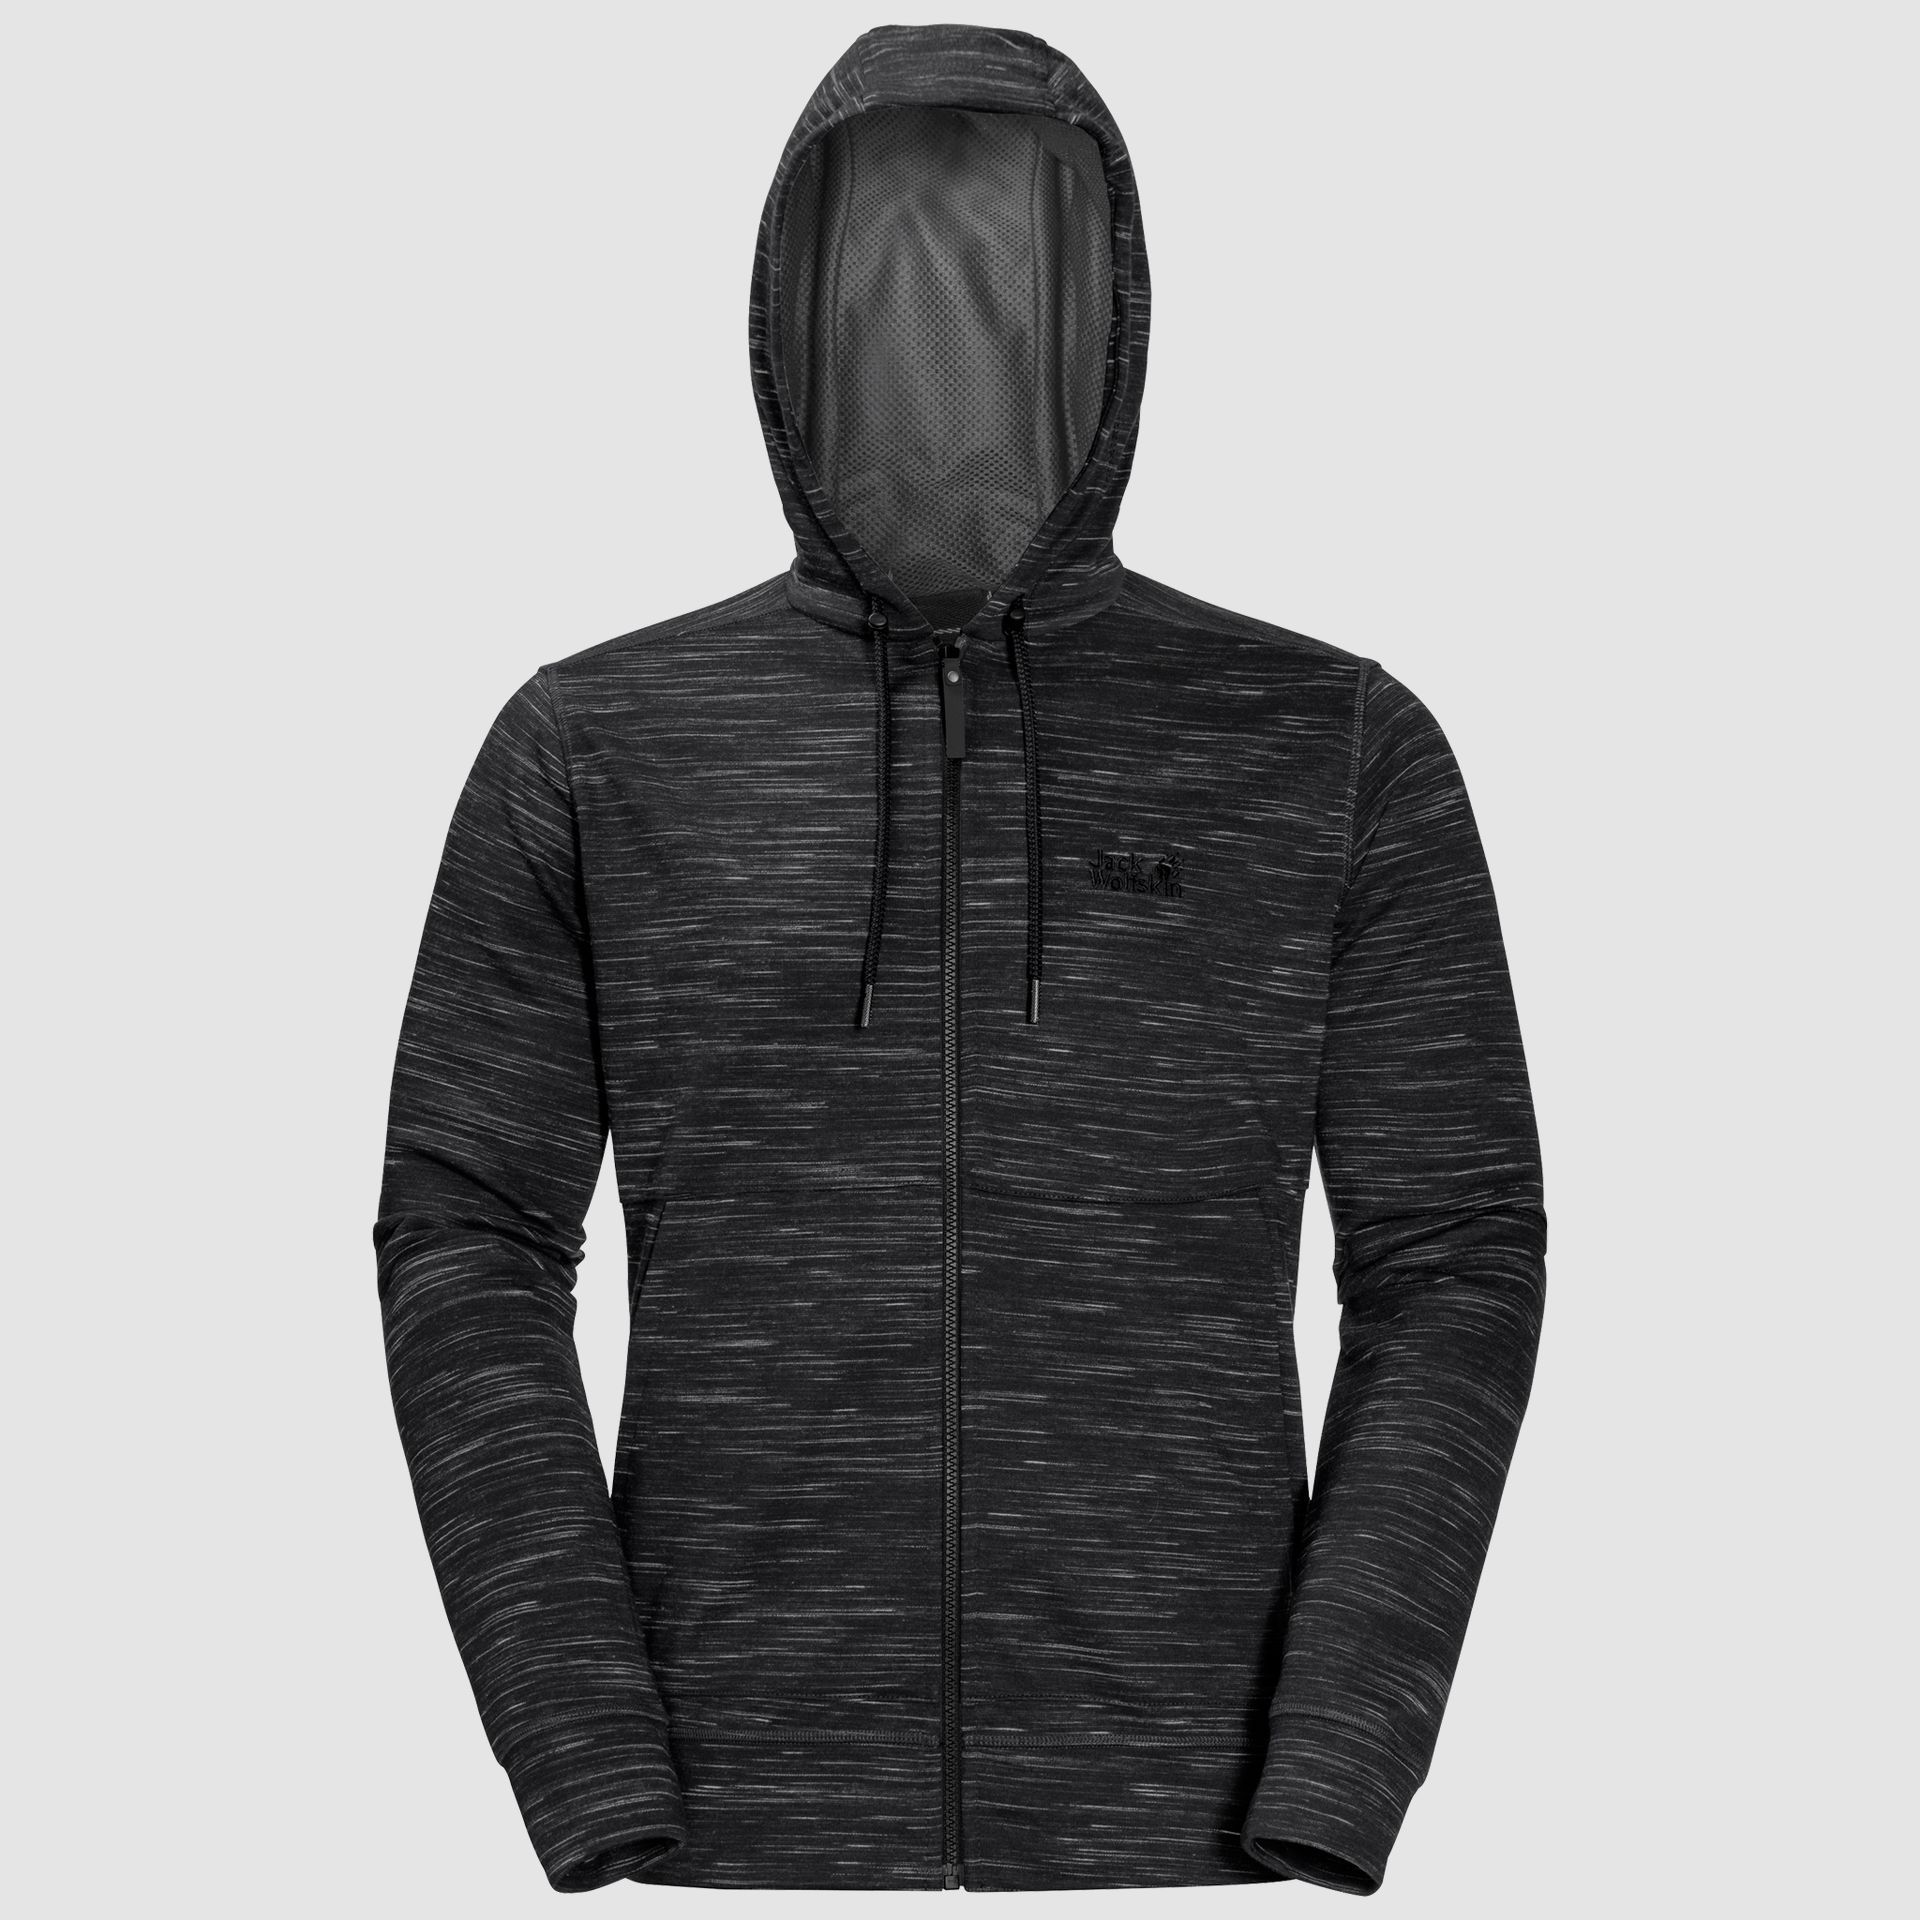 1706201 6000 7 Oceanside Hooded Jacket Men Black 1